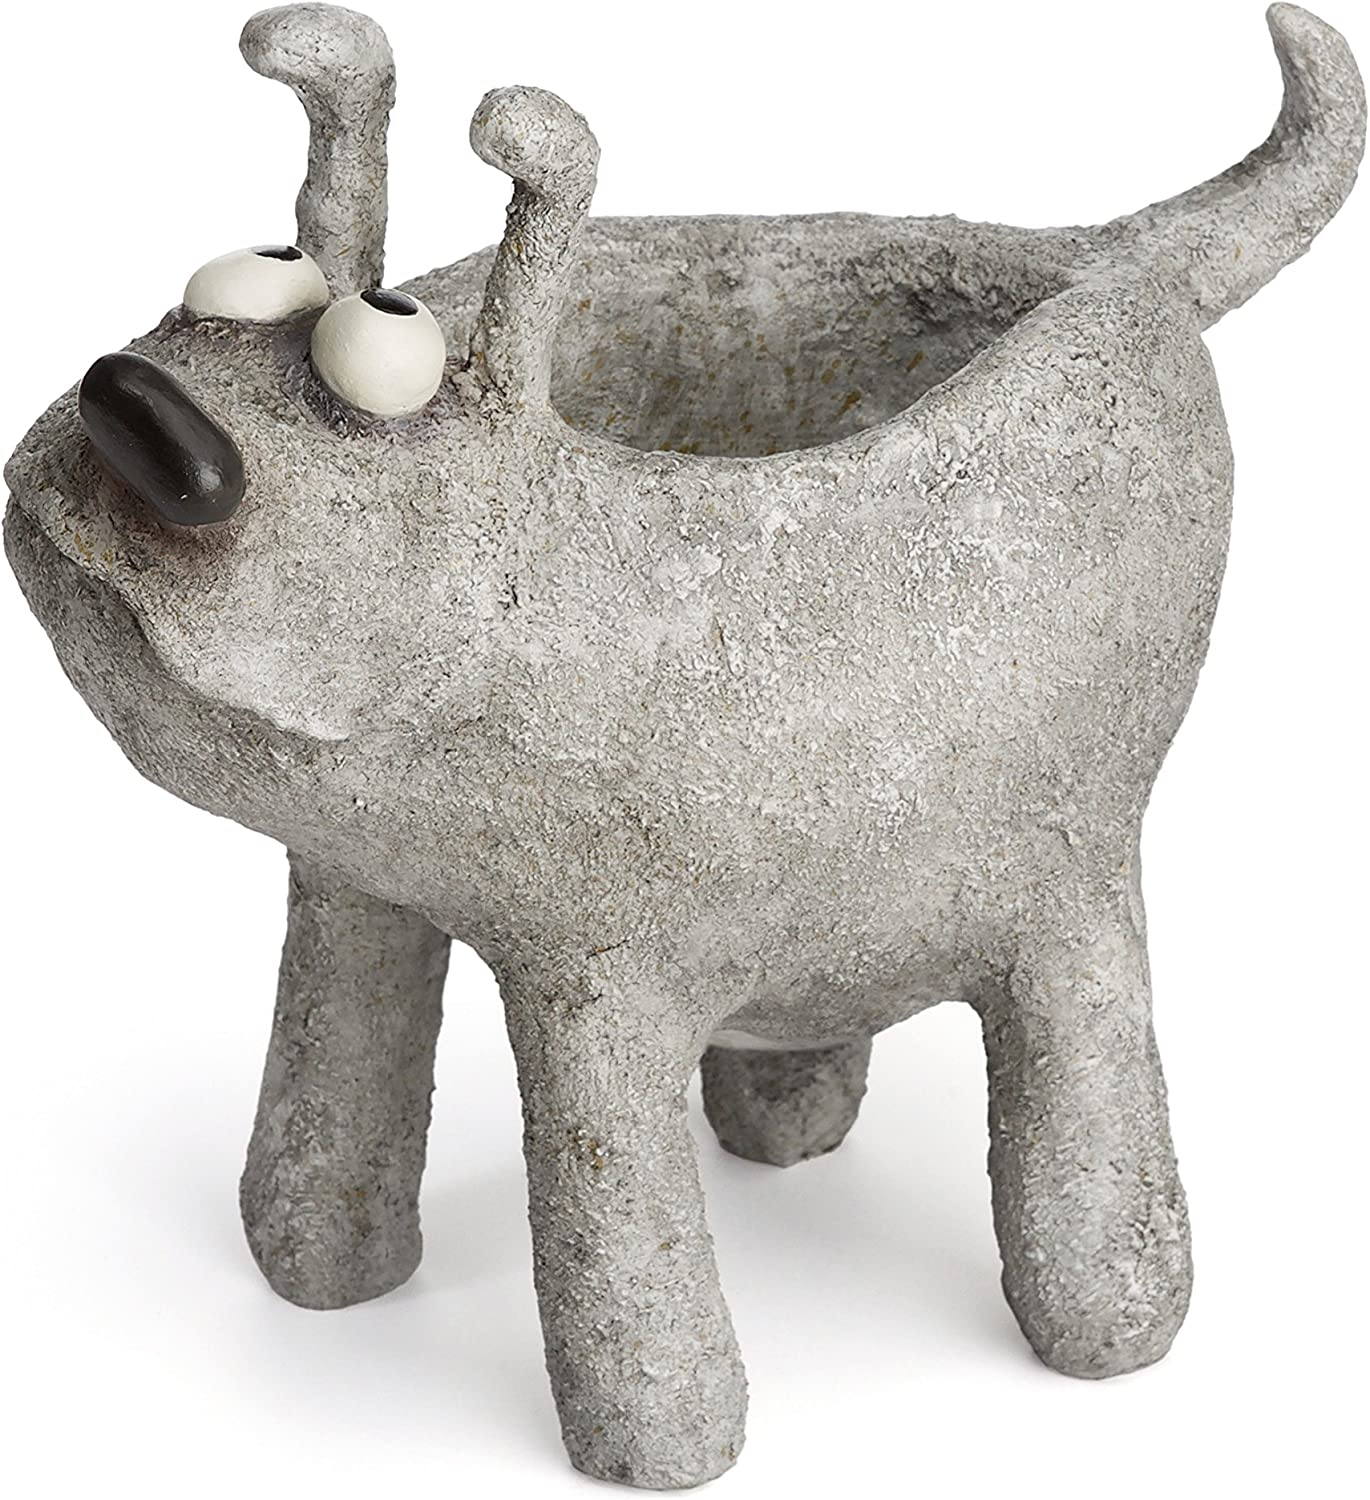 Otto Jr, by Blobhouse, Decorative Planter w Drain Hole Statue for Home Outdoor Garden Lawn Indoor Art Accent Sculpture